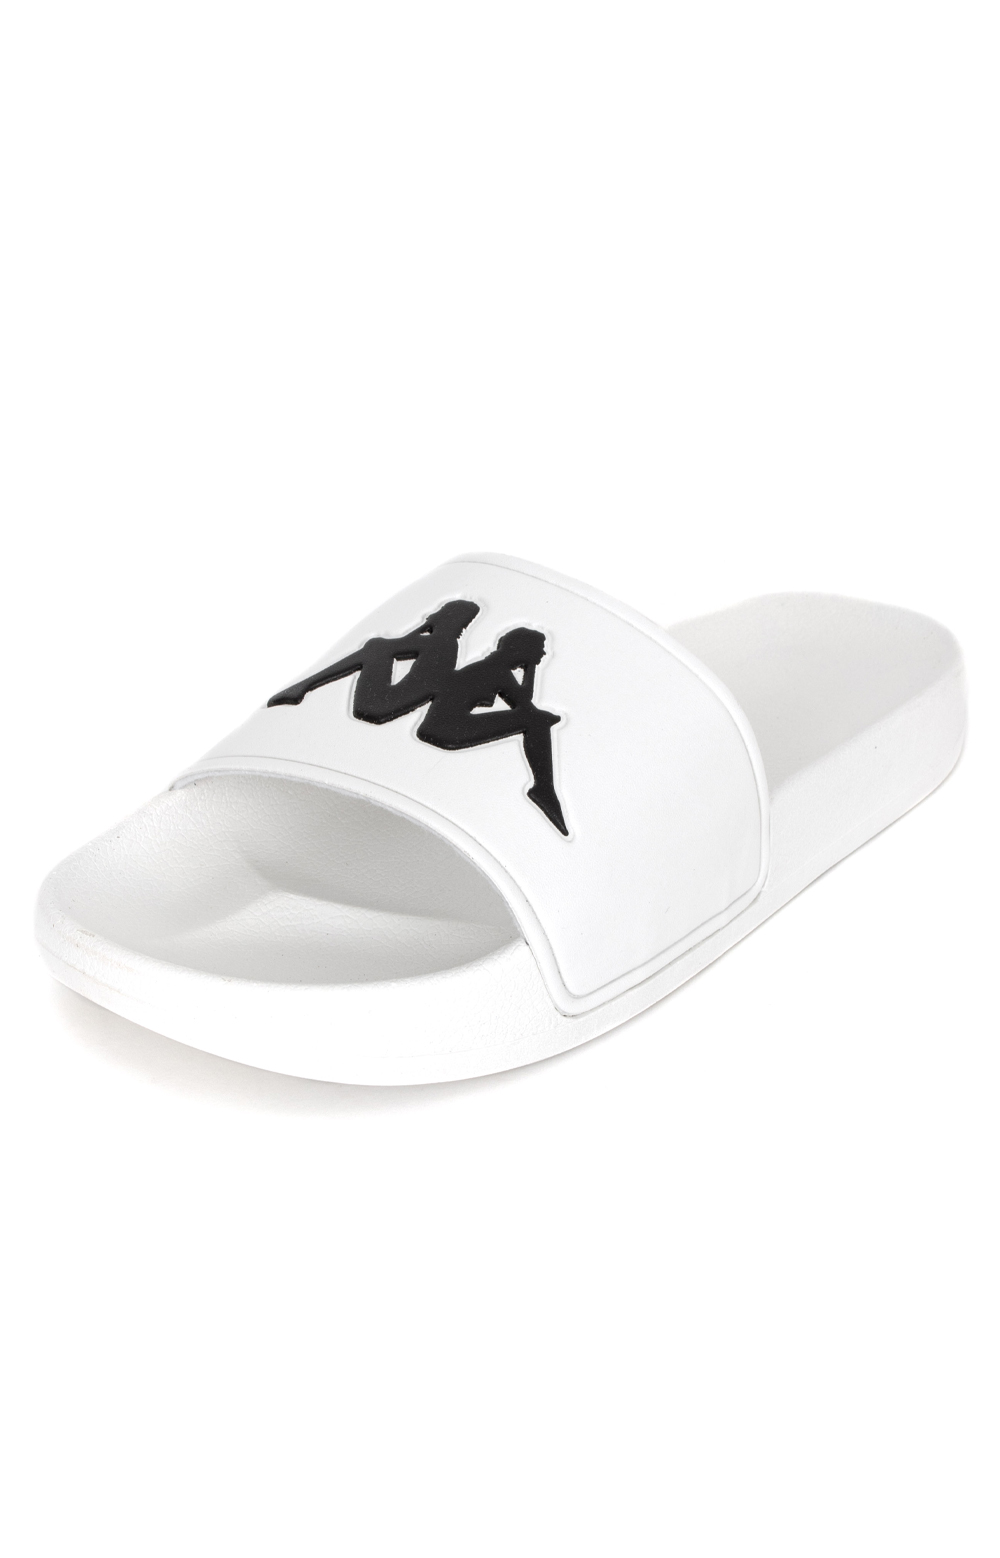 Authentic Adam 2 Slides - White/Black